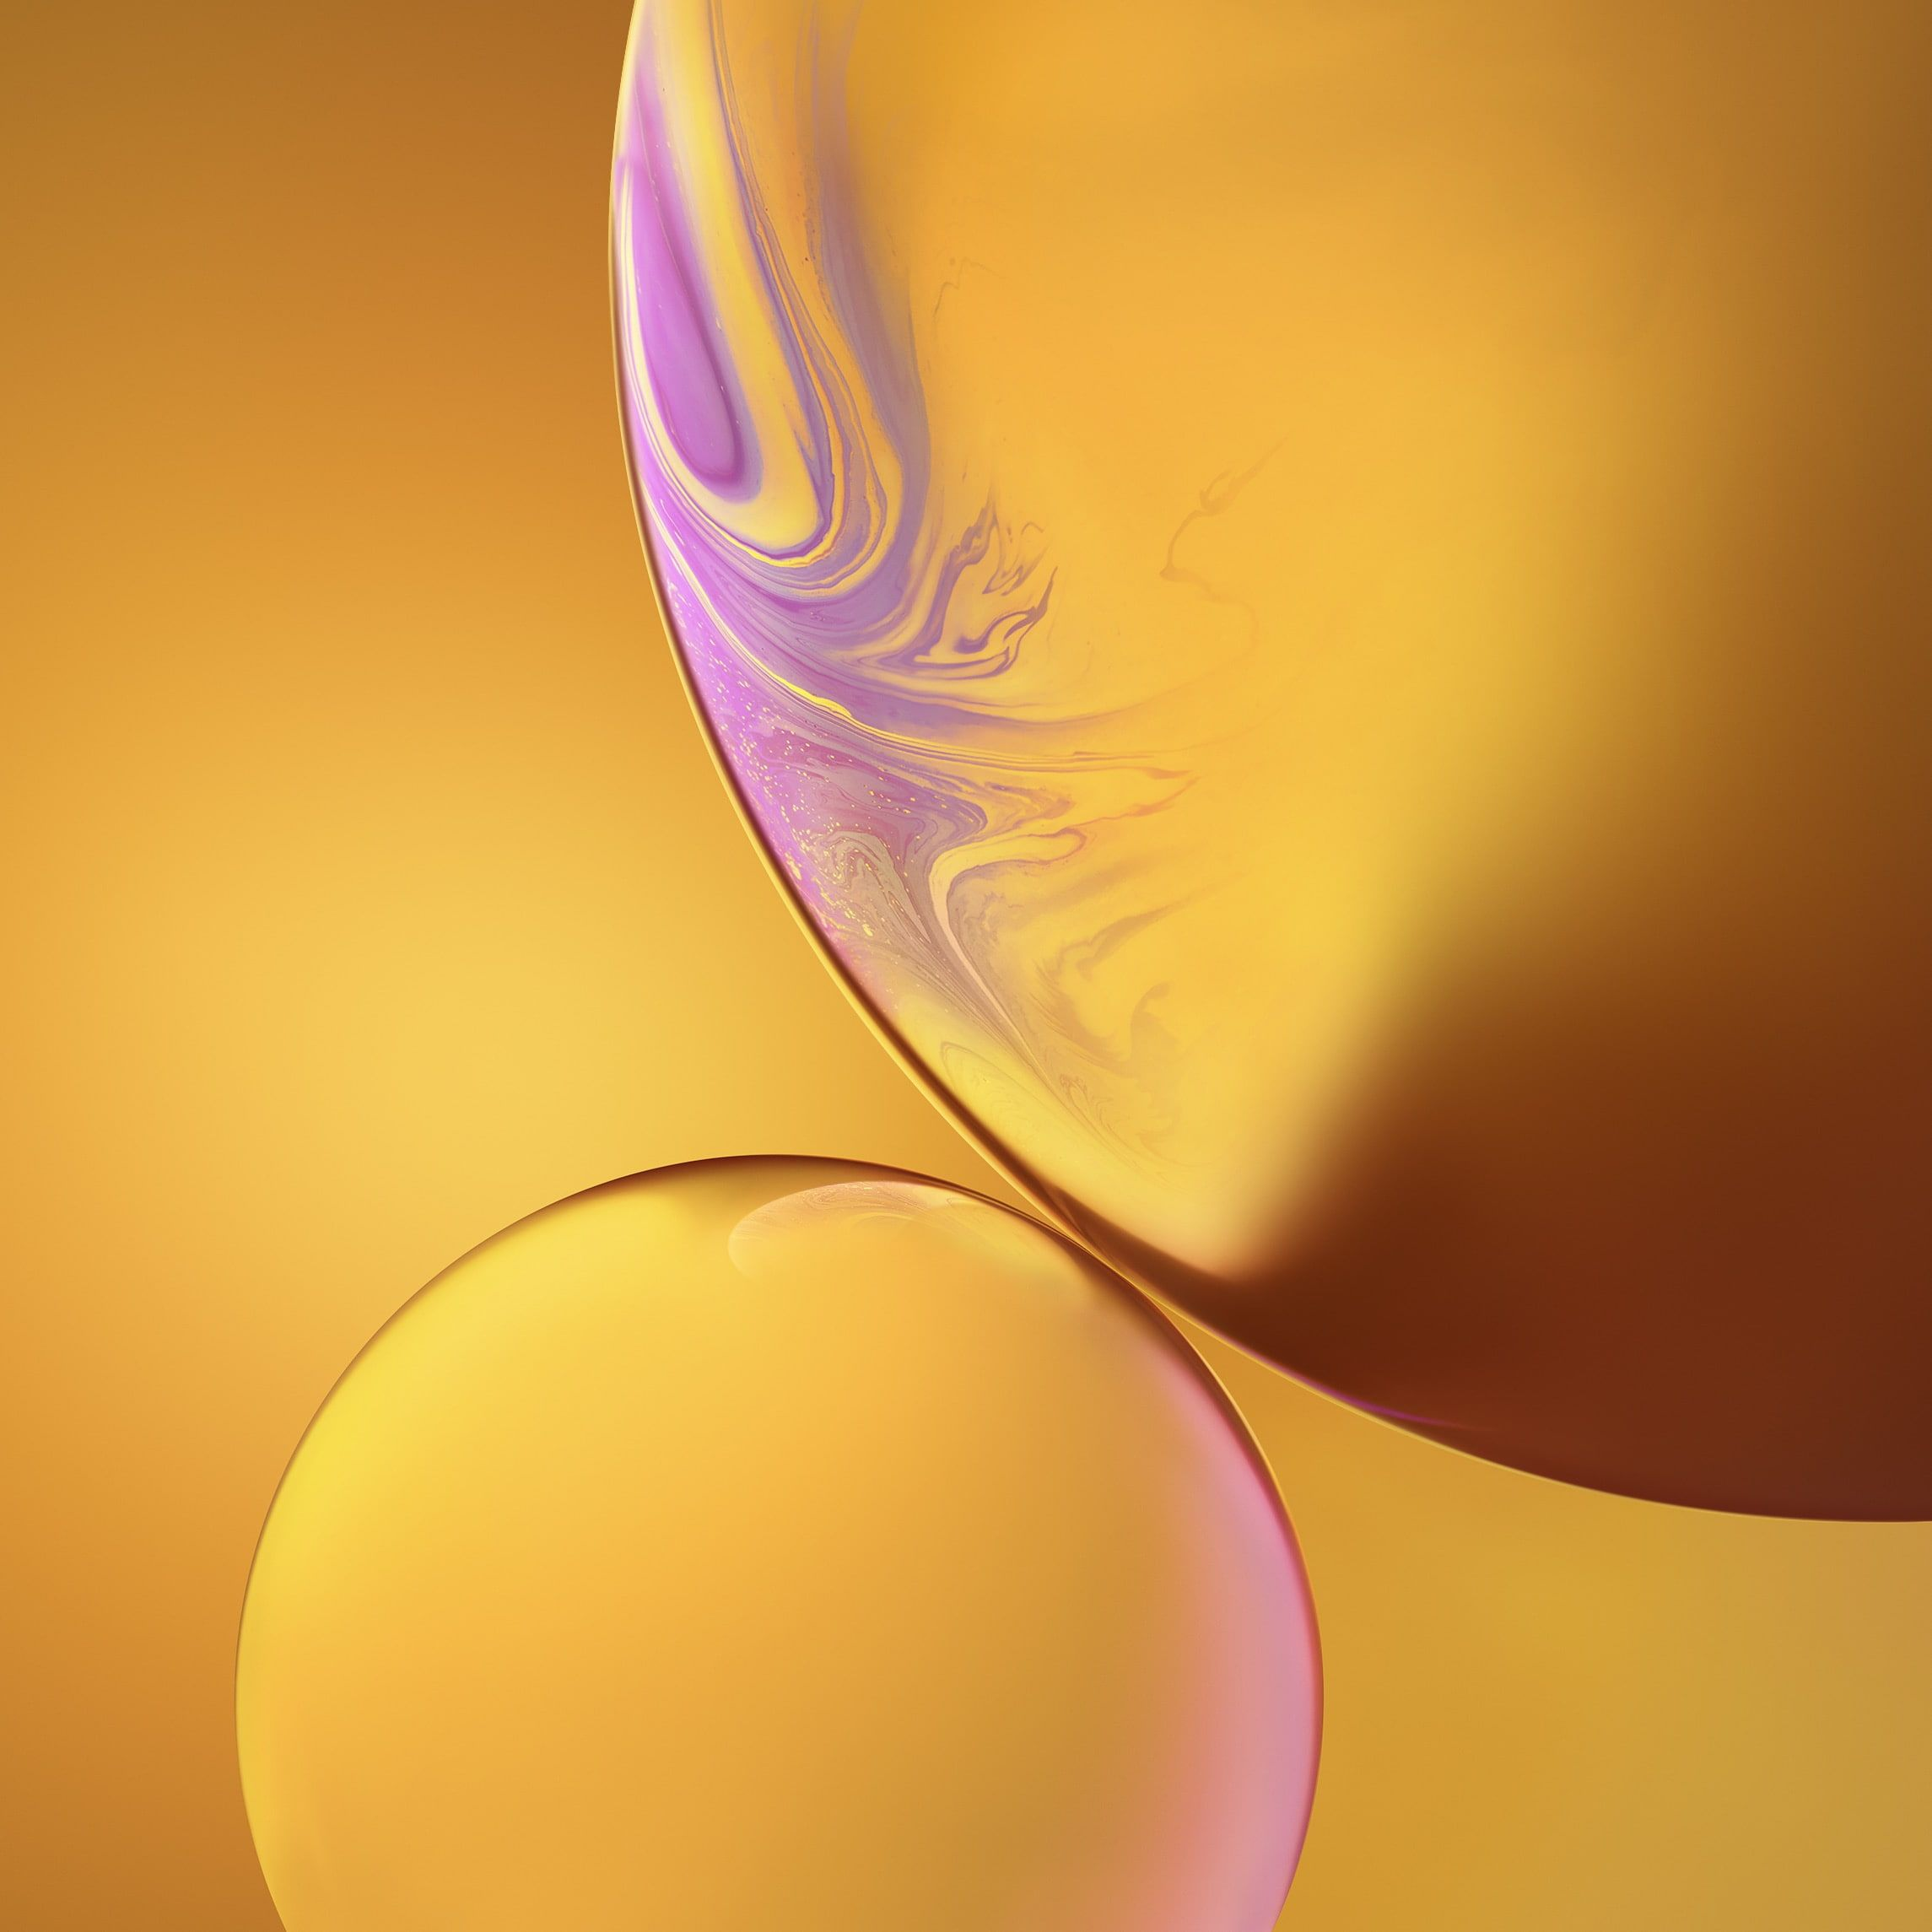 Bubbles Yellow Iphone Xr Ios 12 Stock Hd 1080p Wallpaper Hdwallpaper Desktop In 2020 Bubbles Wallpaper Yellow Iphone Android Wallpaper